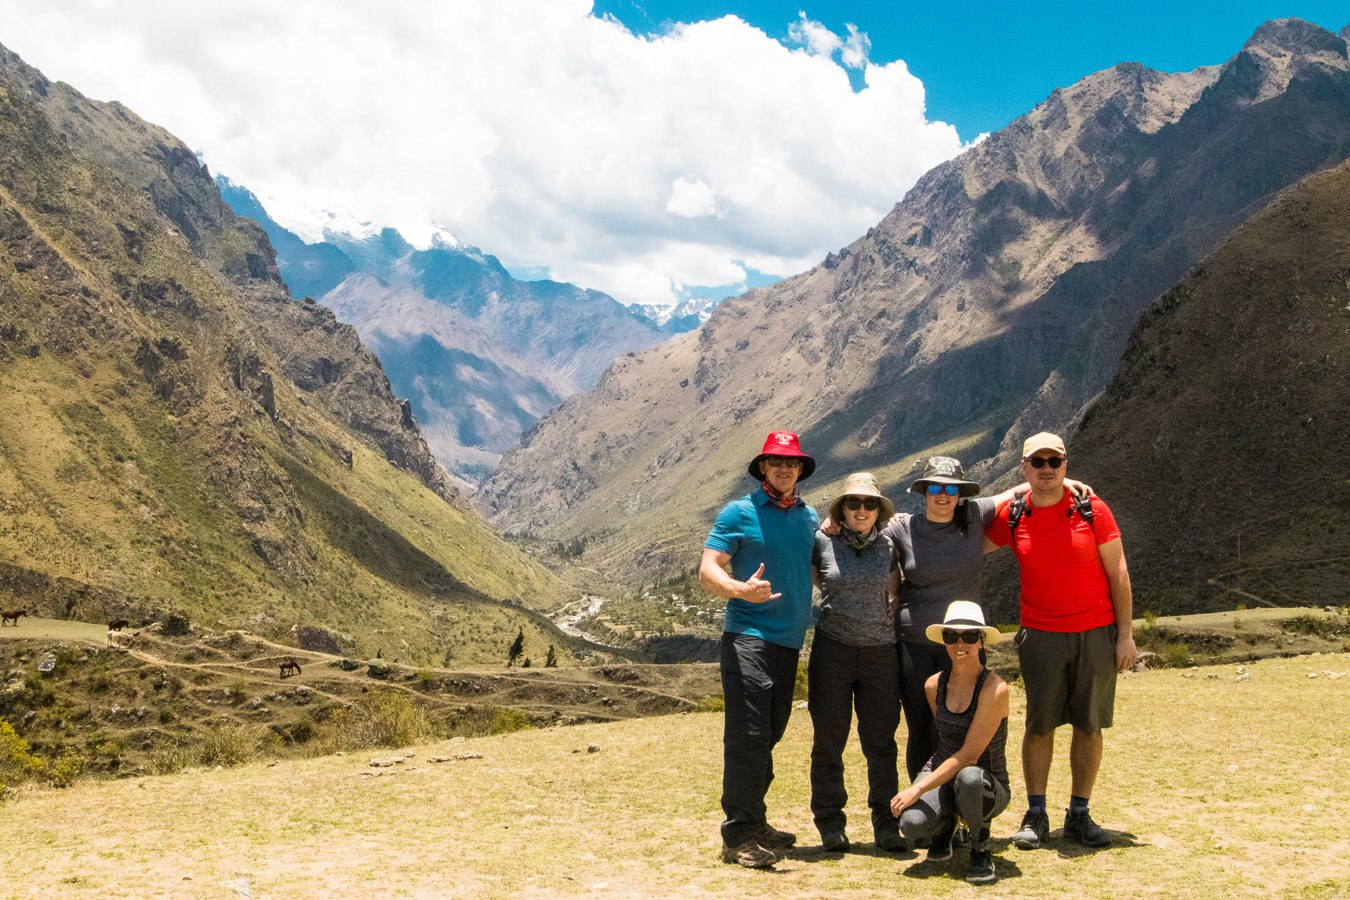 Train Tour To Machu Picchu